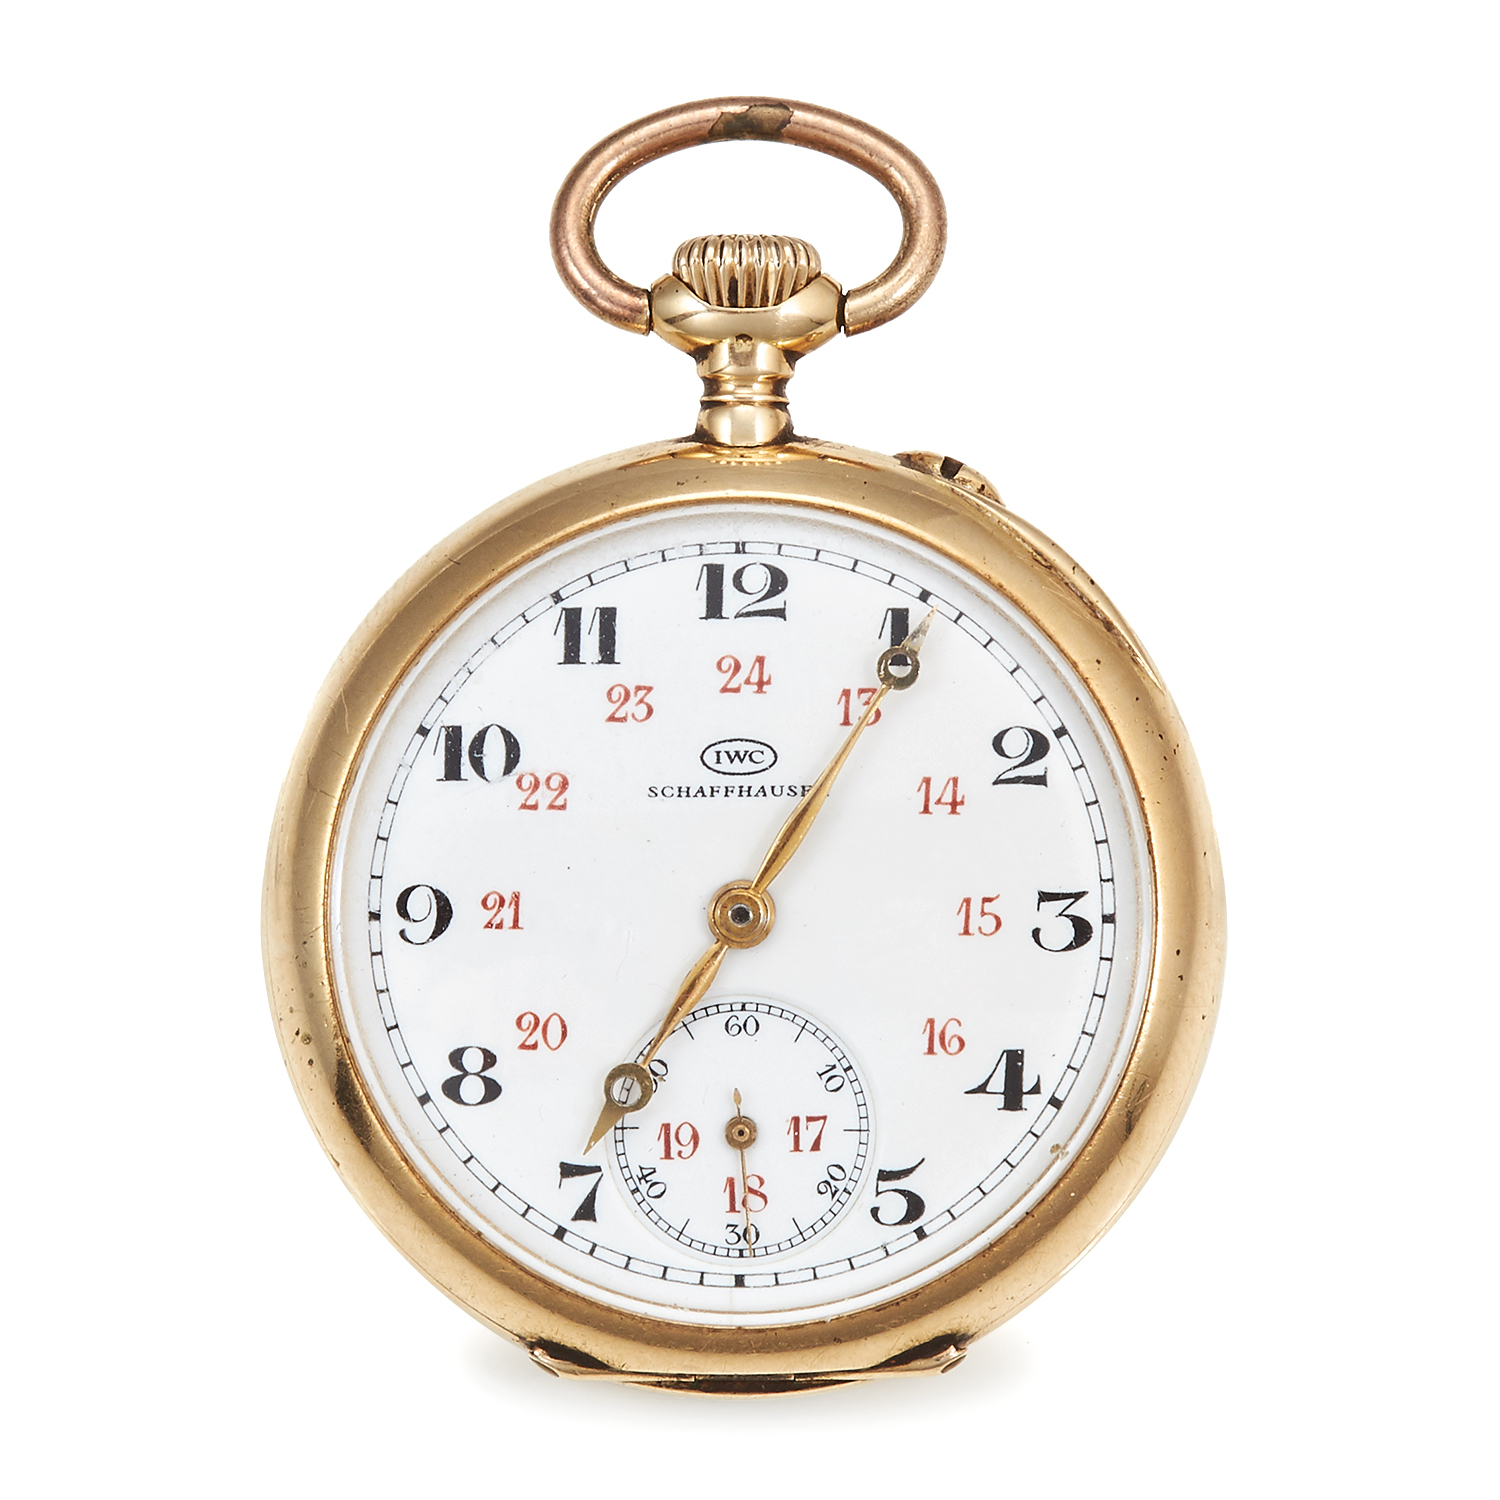 Los 372 - AN ANTIQUE POCKET WATCH, IWC SCHAFFHAUSEN in high carat yellow gold, the circular case with engraved